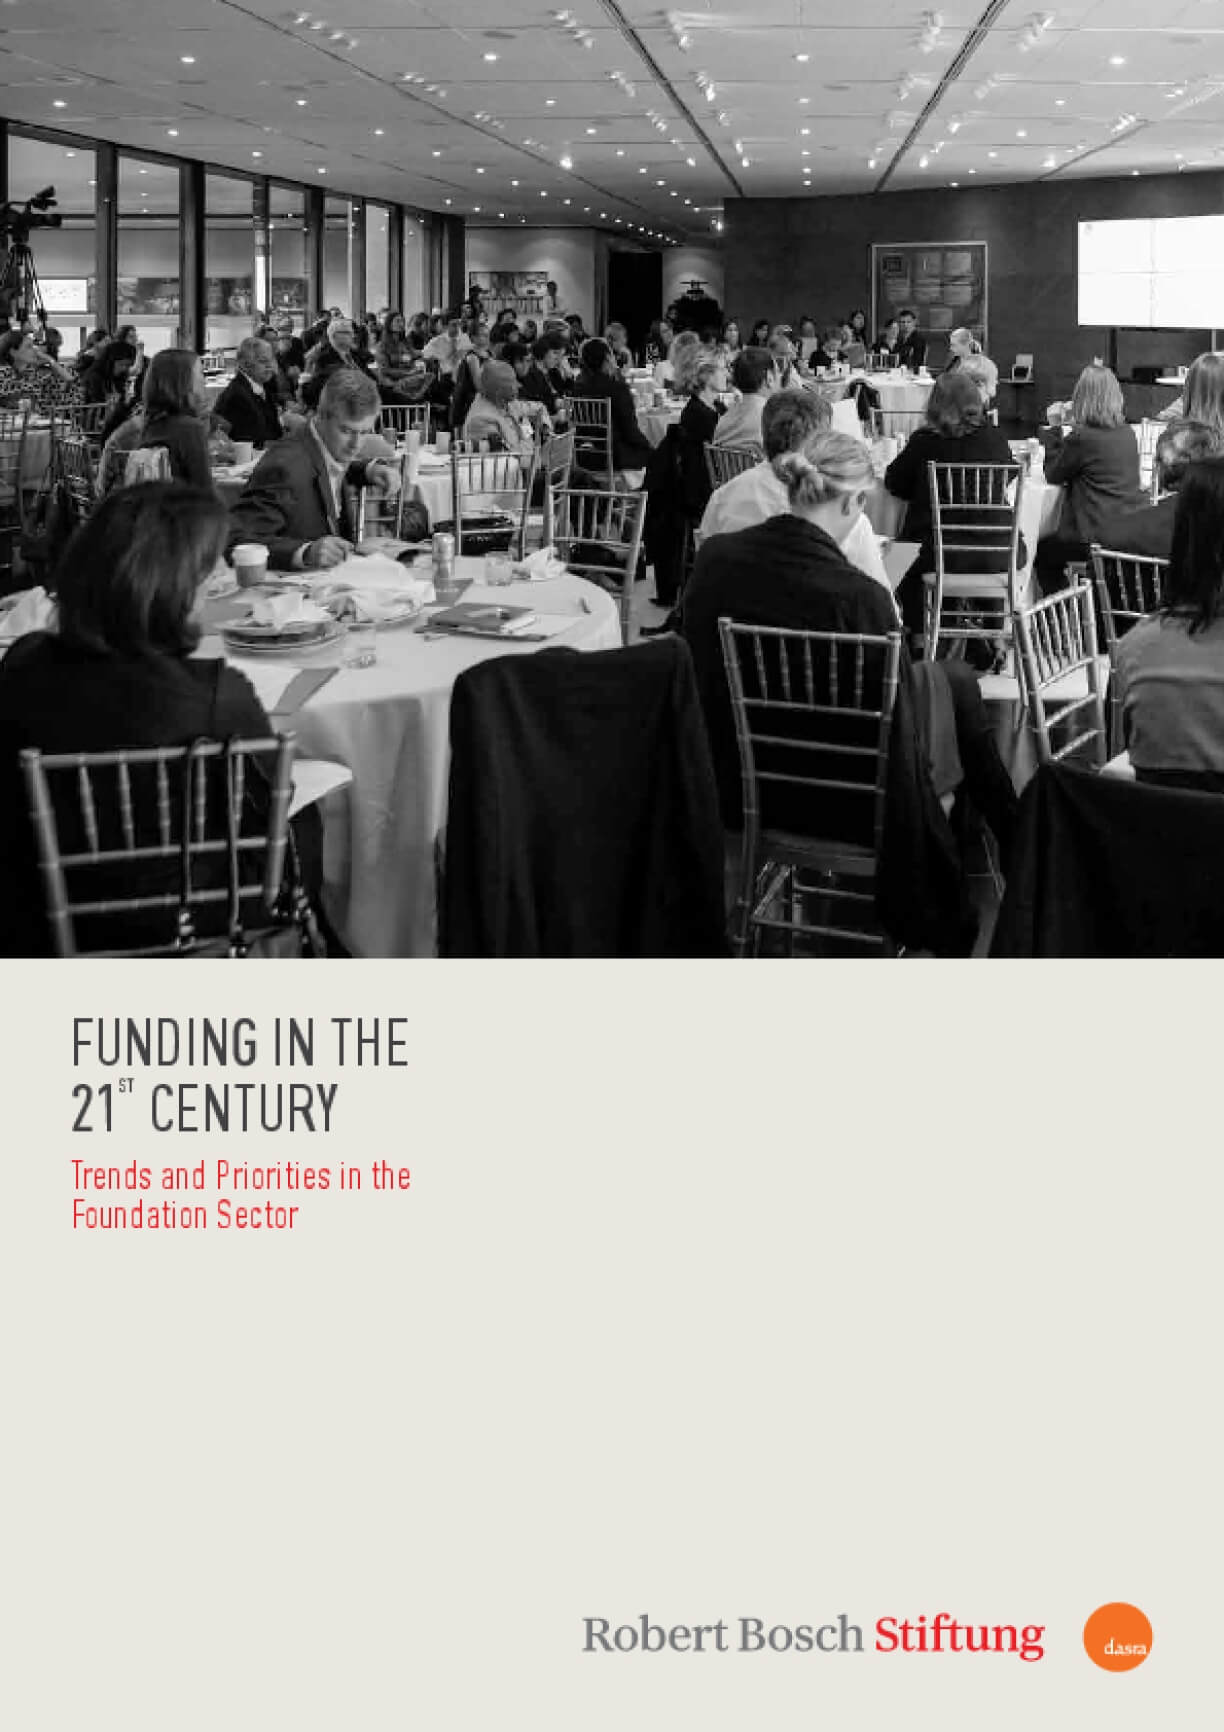 Funding in the 21st Century: Trends and Priorities in the Foundation Sector